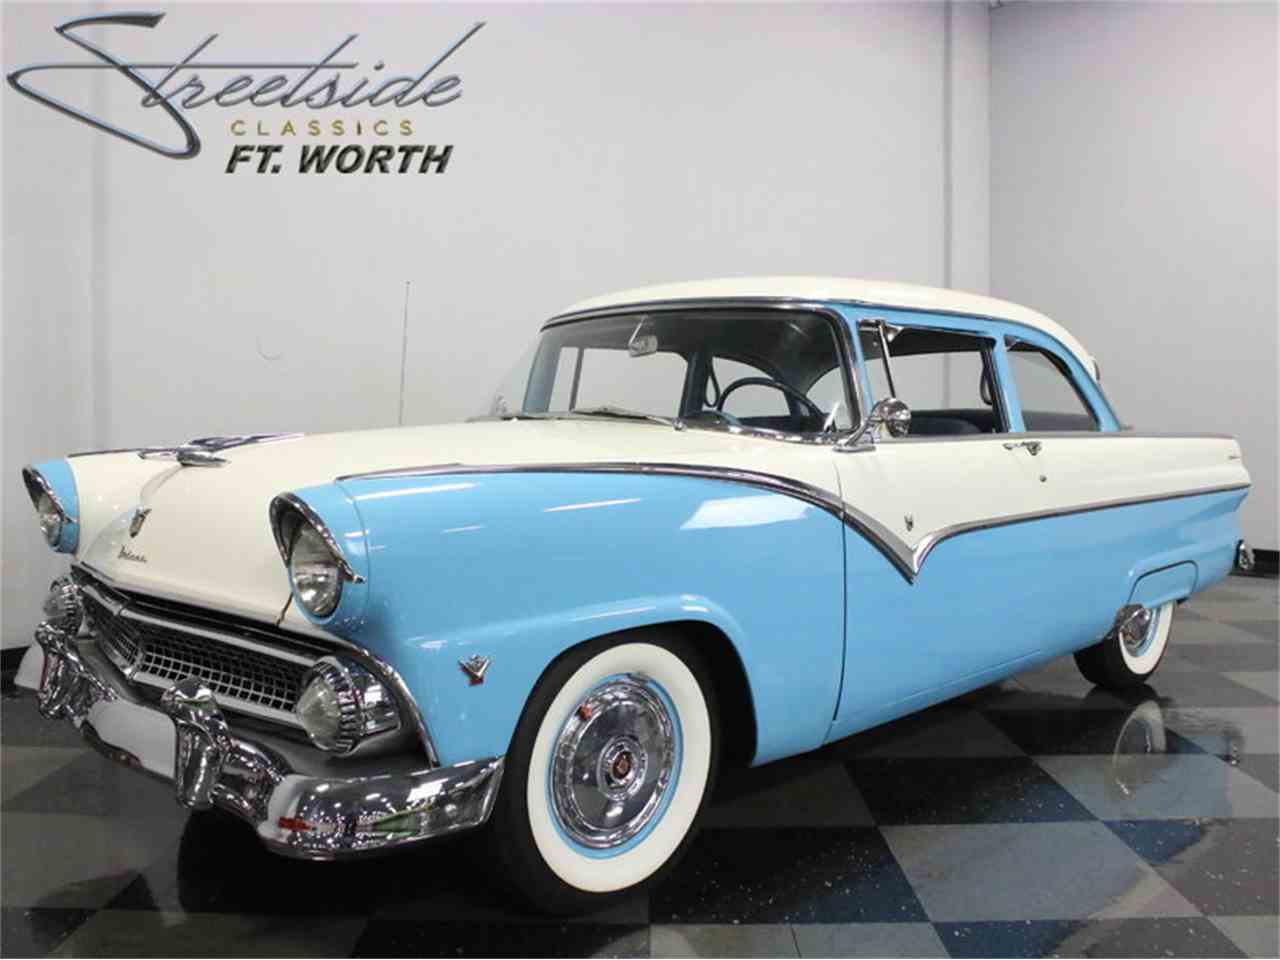 1955 ford fairlane crown victoria blog cars on line - 1955 Ford Fairlane For Sale Cc 997891